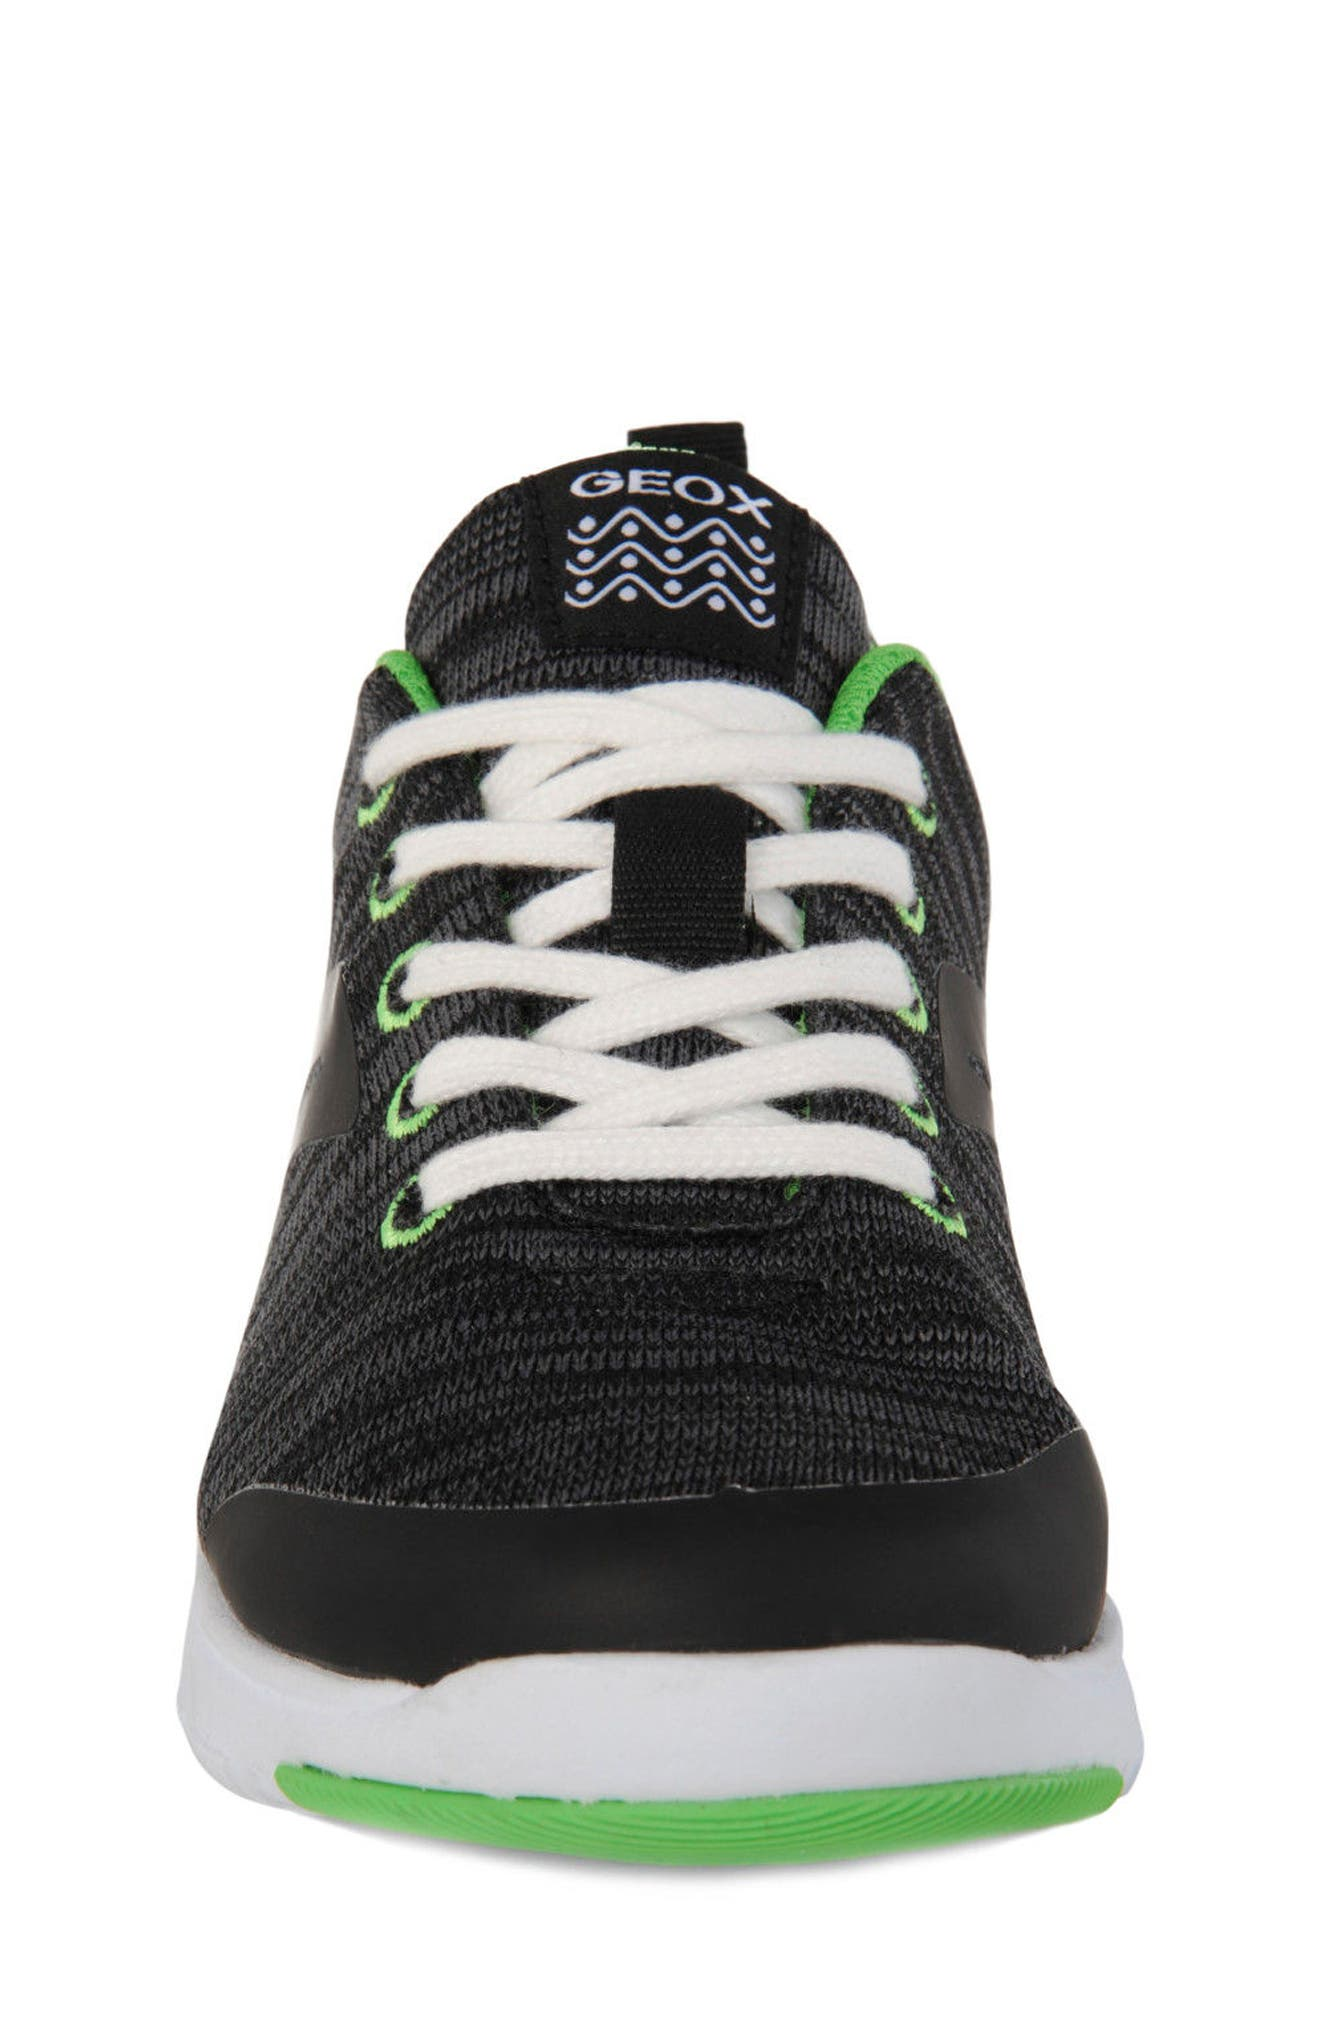 Alternate Image 4  - Geox Xunday Performance Knit Low Top Sneaker (Toddler, Little Kid & Big Kid)